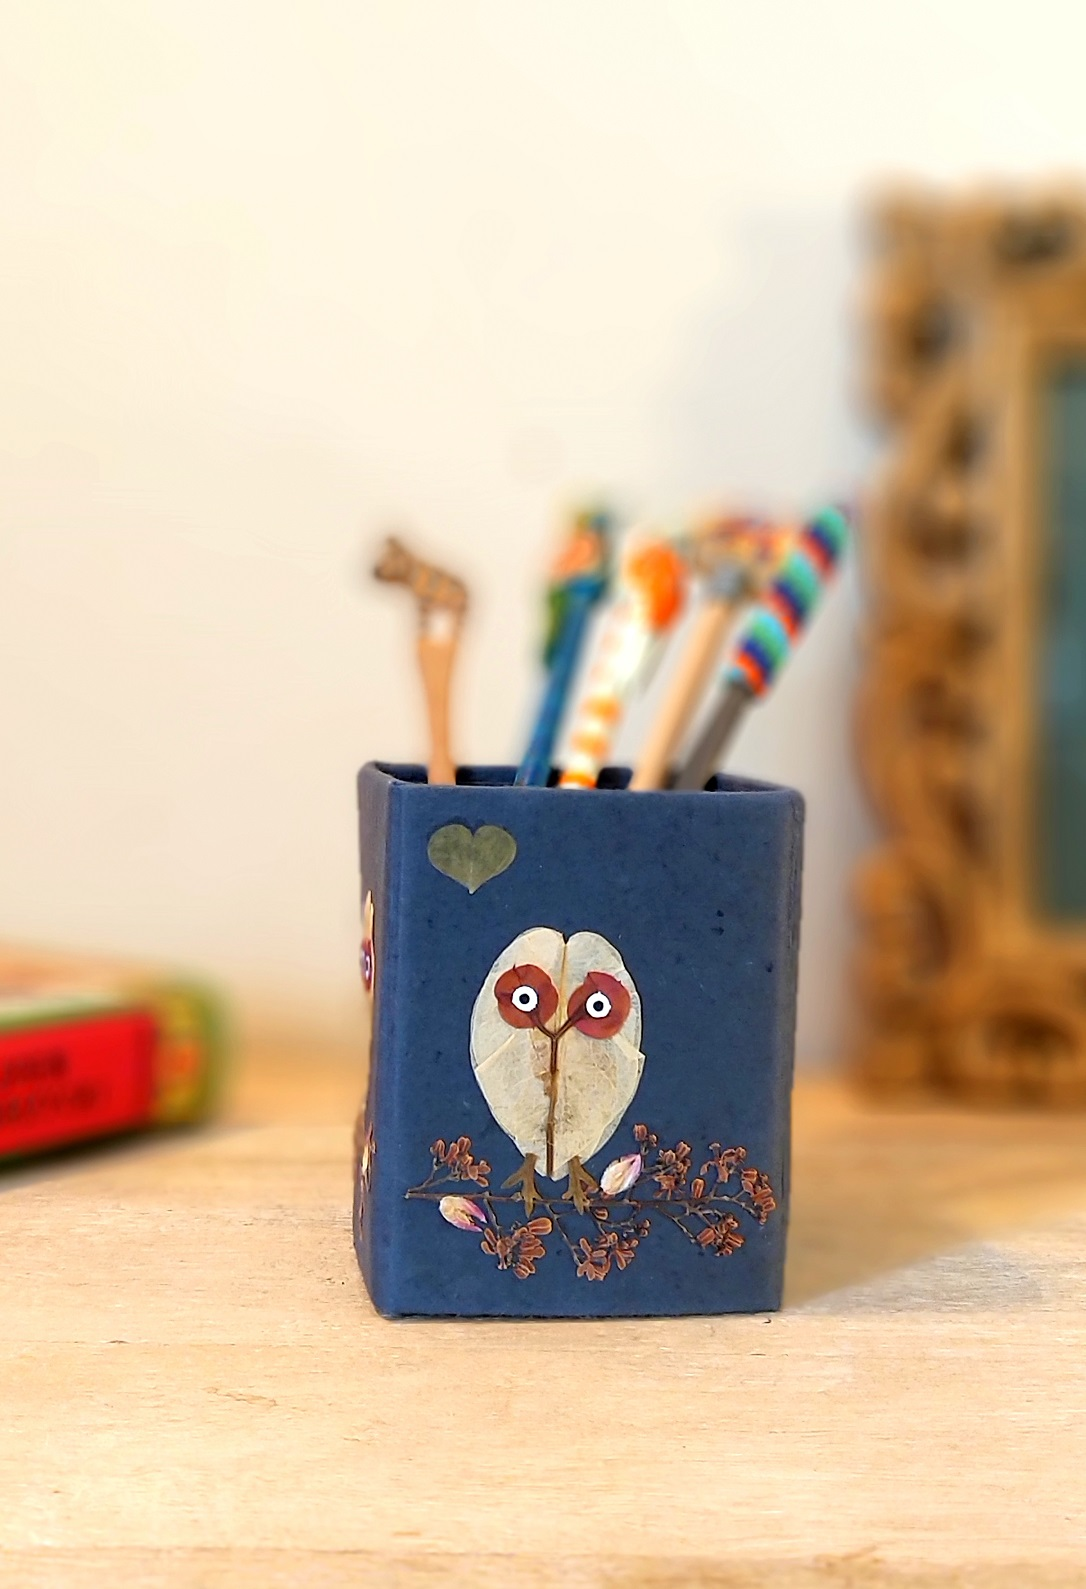 Curious Owl Pencil Holder